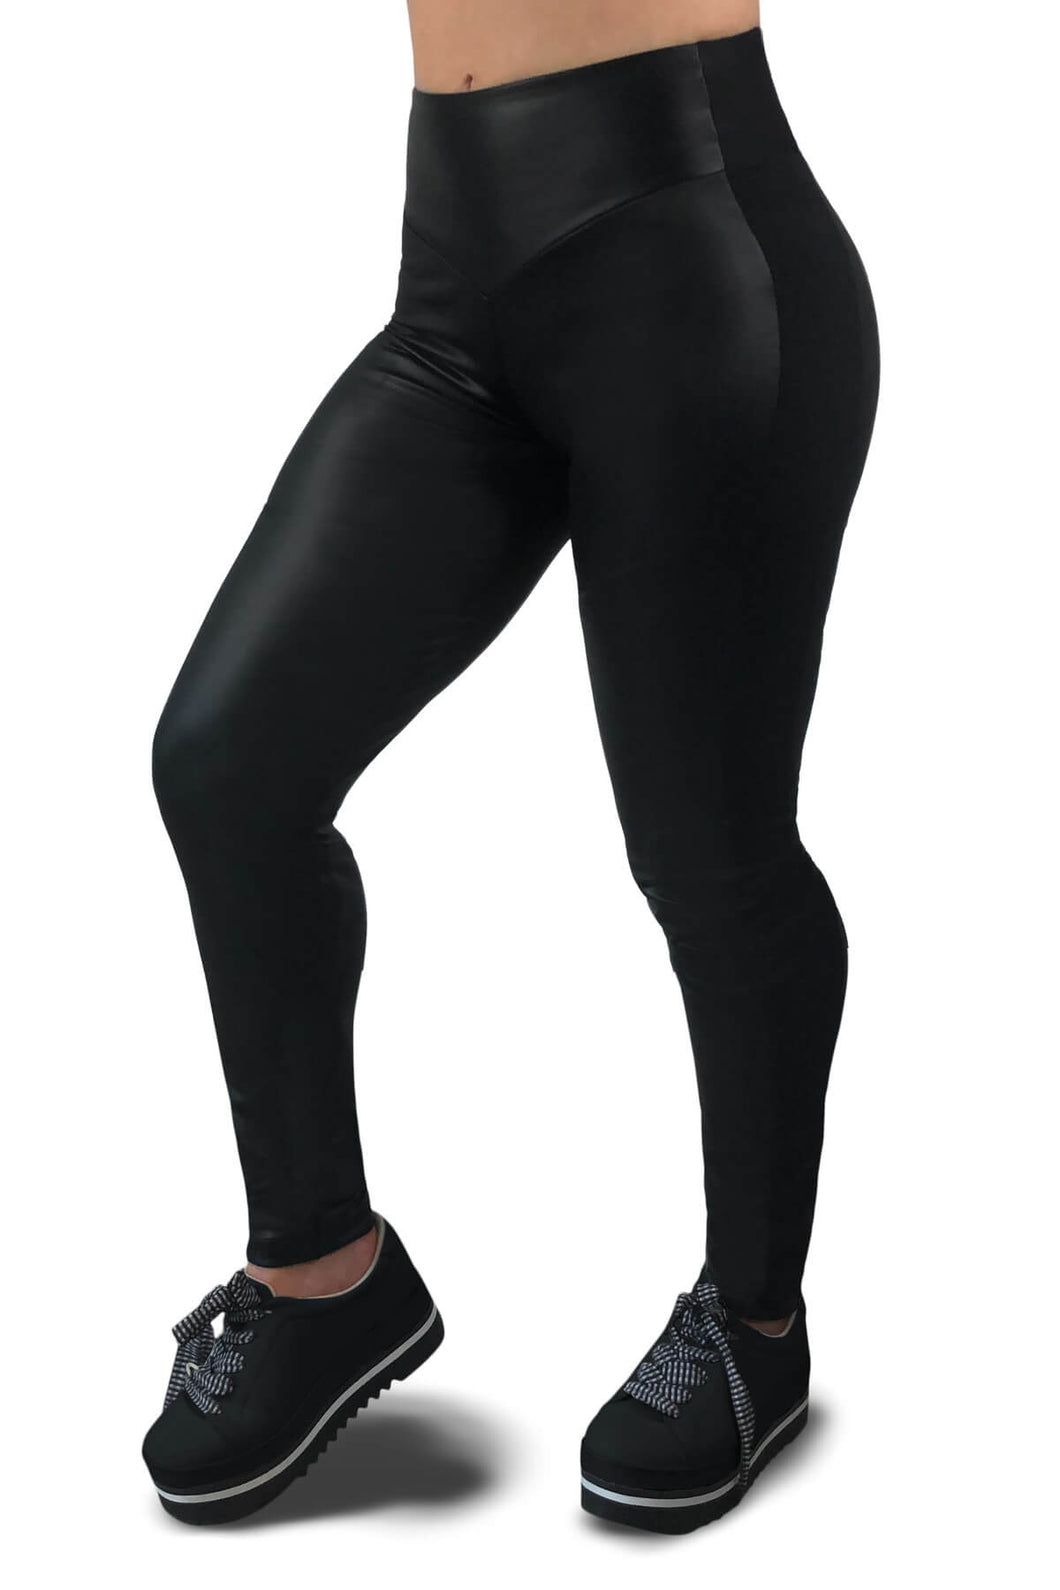 Hipkini Legging Score Draw - 3337367, shiny leggings, leather leggings